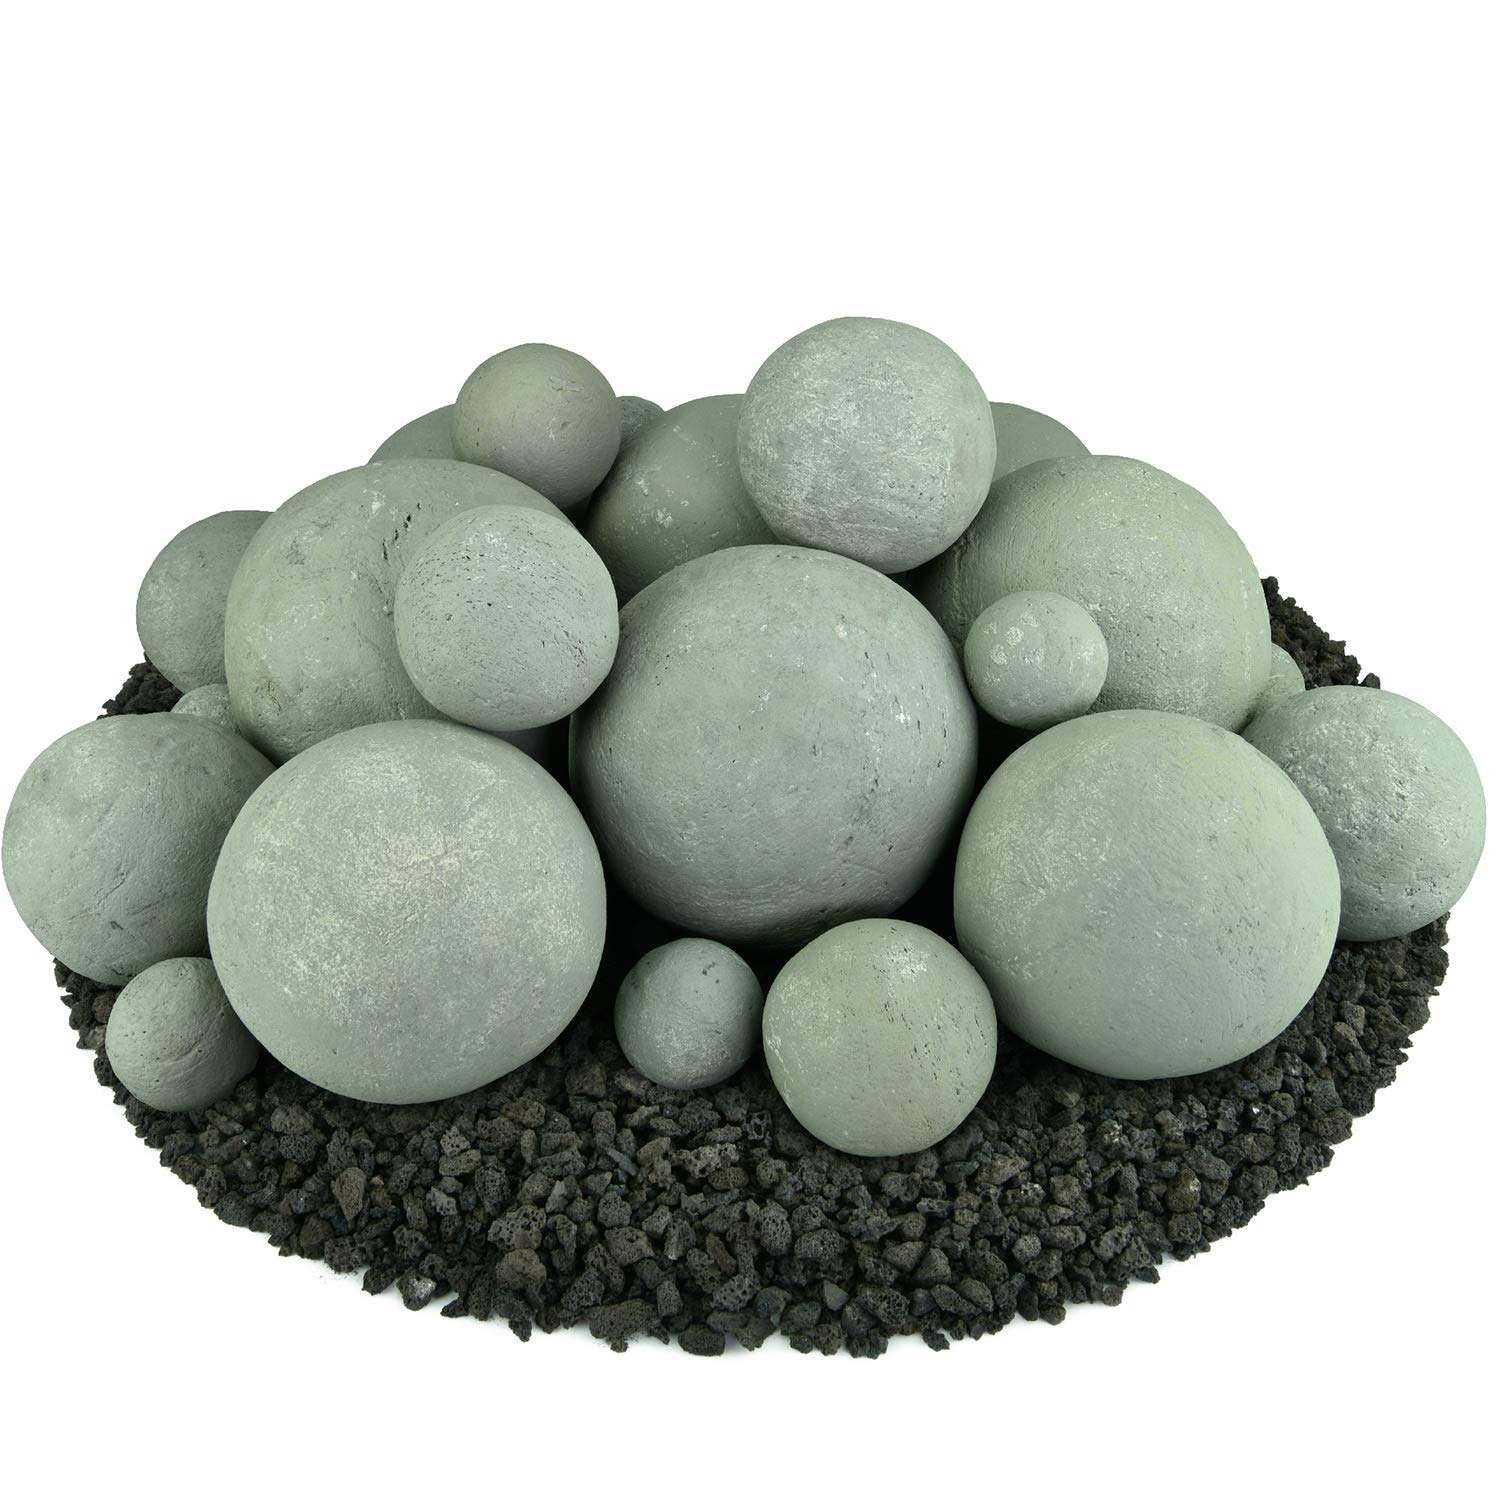 Ceramic Fire Balls   Mixed Set of 23   Modern Accessory for Indoor and Outdoor Fire Pits or Fireplaces – Brushed Concrete Look   Pewter Gray